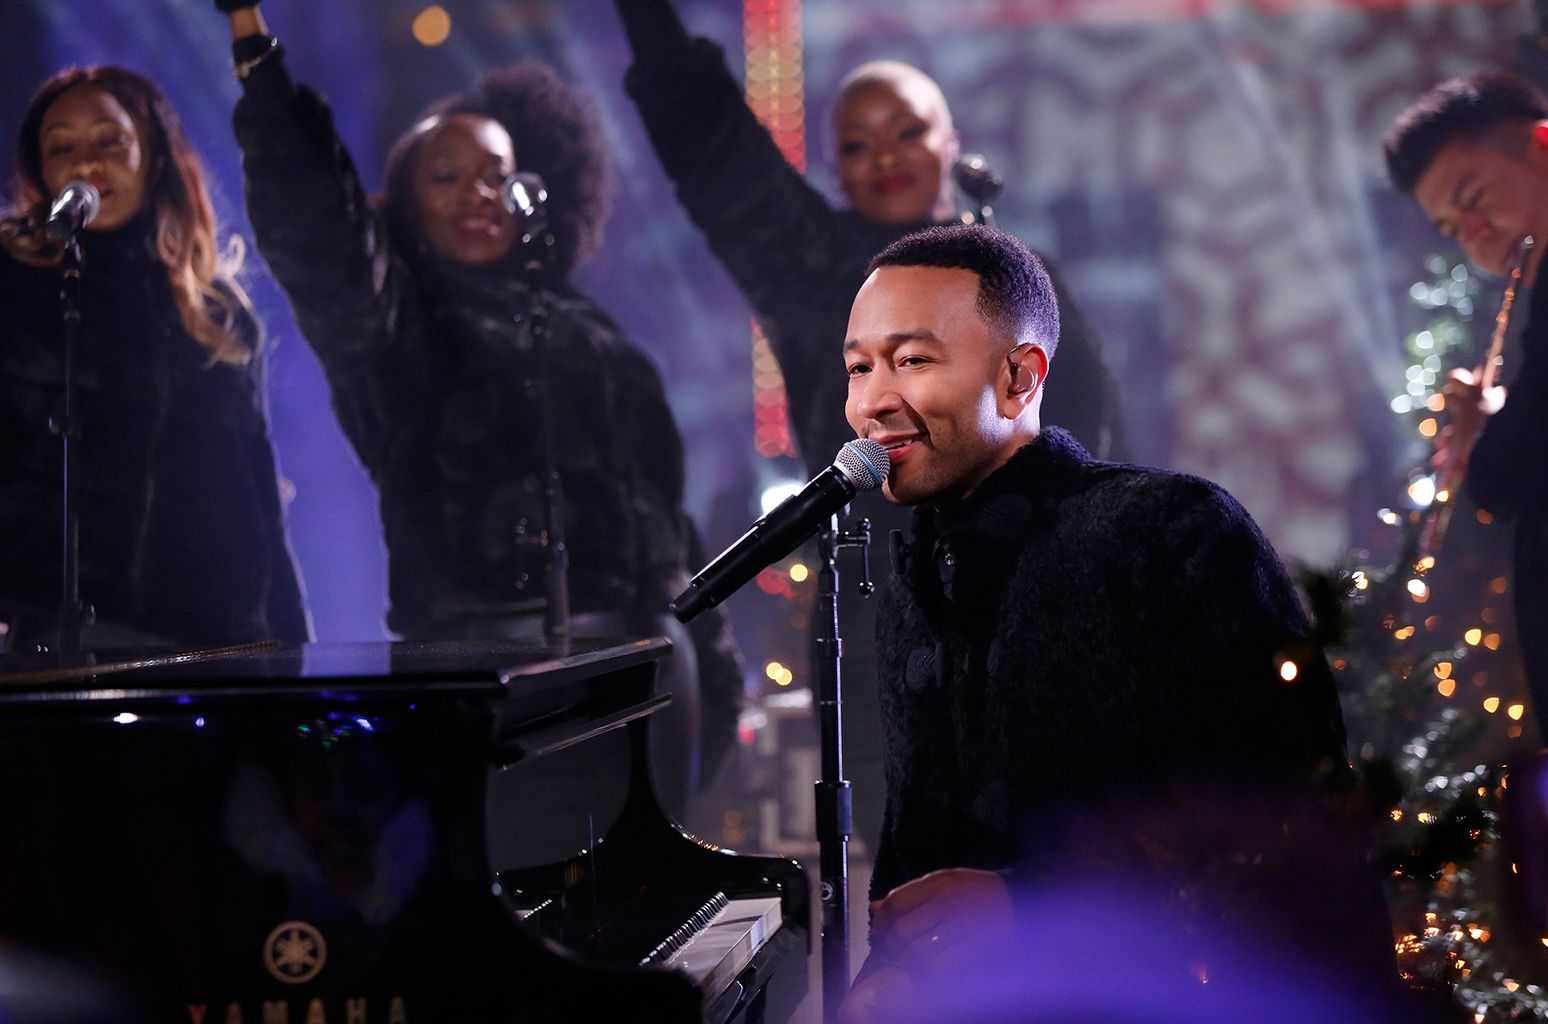 Diana Ross, John Legend, Kelly Clarkson & More to Perform